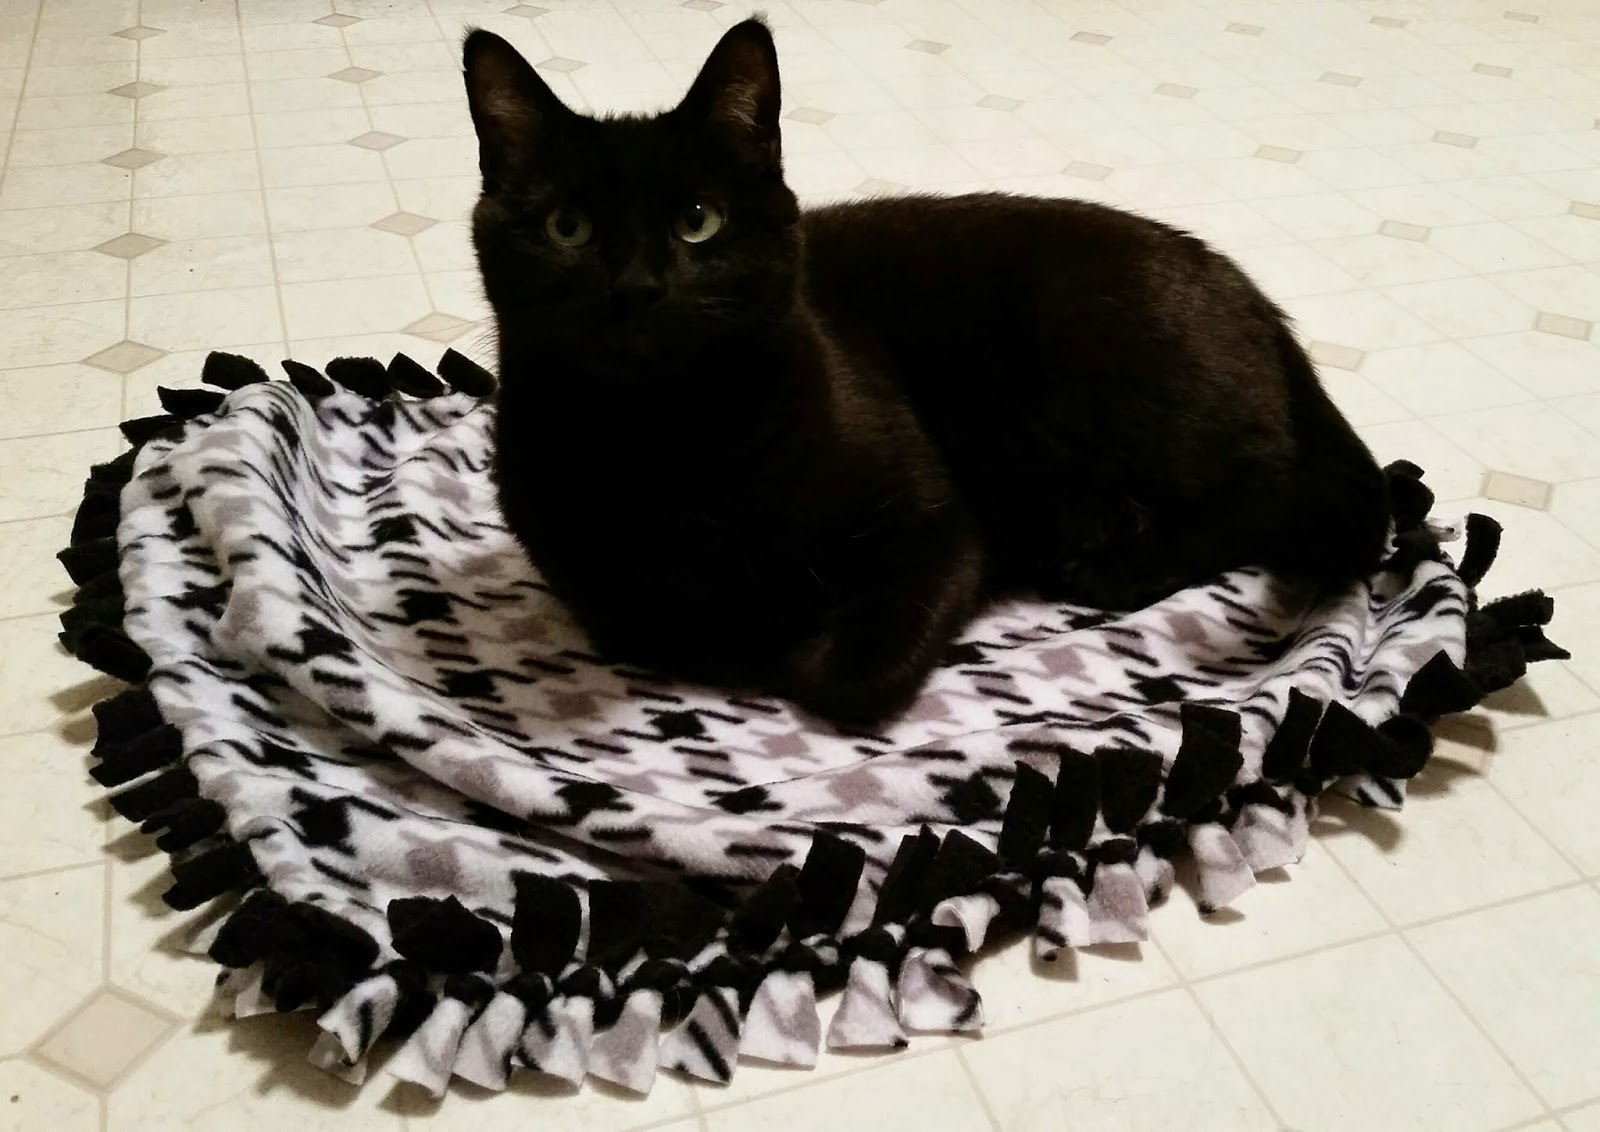 Cat on pet fleece blanket